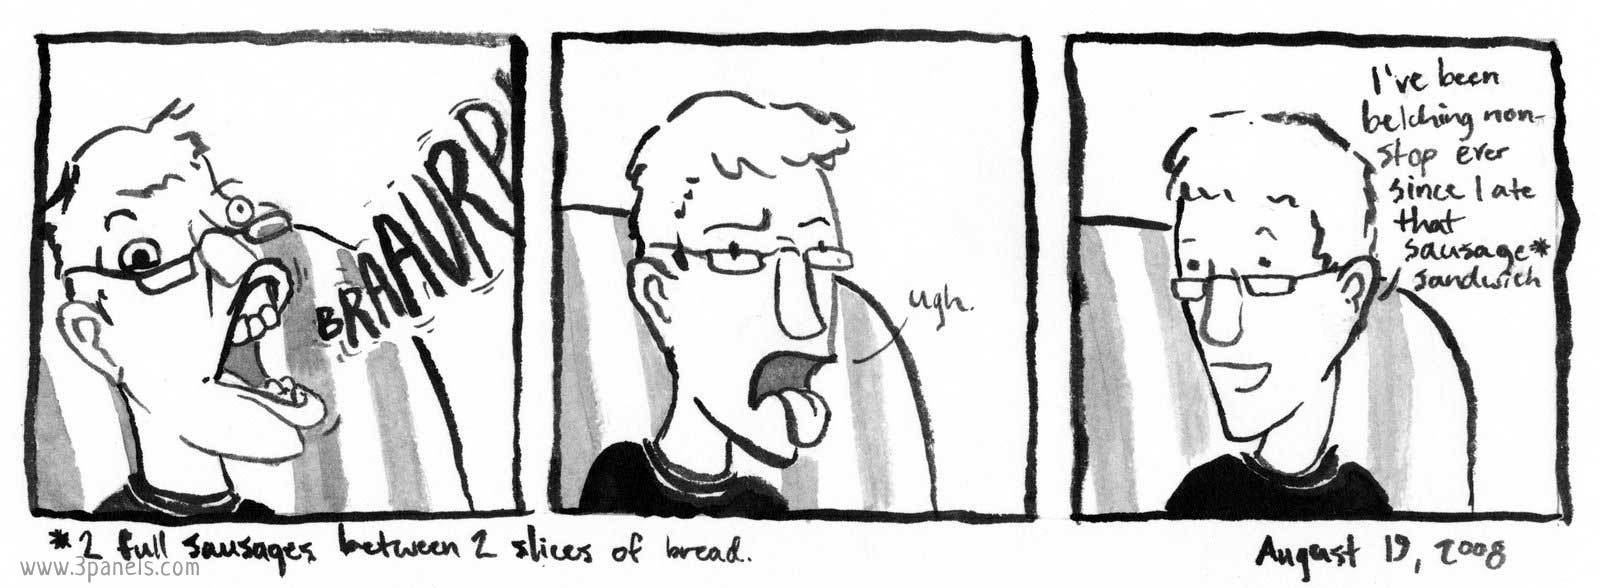 "Panel one: Dean's brother Jordan belches loudly, making a grotesque face. Panel two: Jordan makes a face and says: ""ugh."" Panel three: Jordan says: ""I've been belching non-stop ever since I ate that sausage sandwich."" Text at the bottom explains what a sausage sandwich is: ""2 full sausages between 2 slices of bread."""